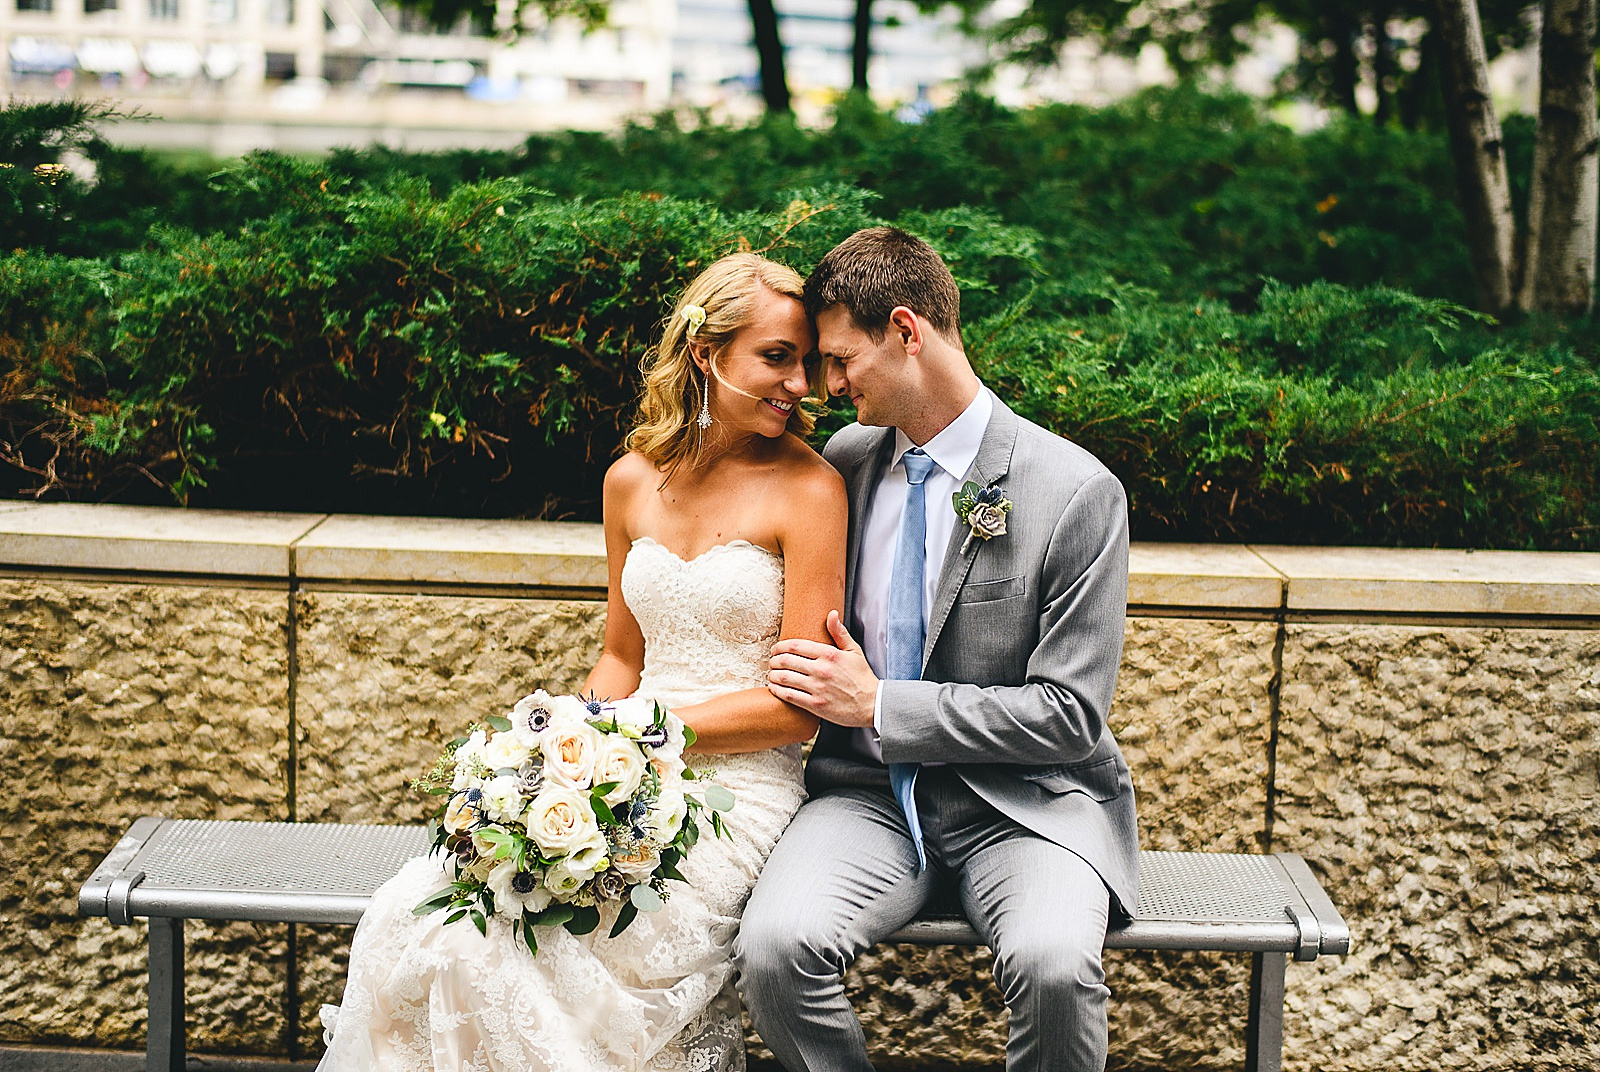 28 chicago wedding photographer - Audrey + Jake's Beautiful Chicago Wedding at Chez